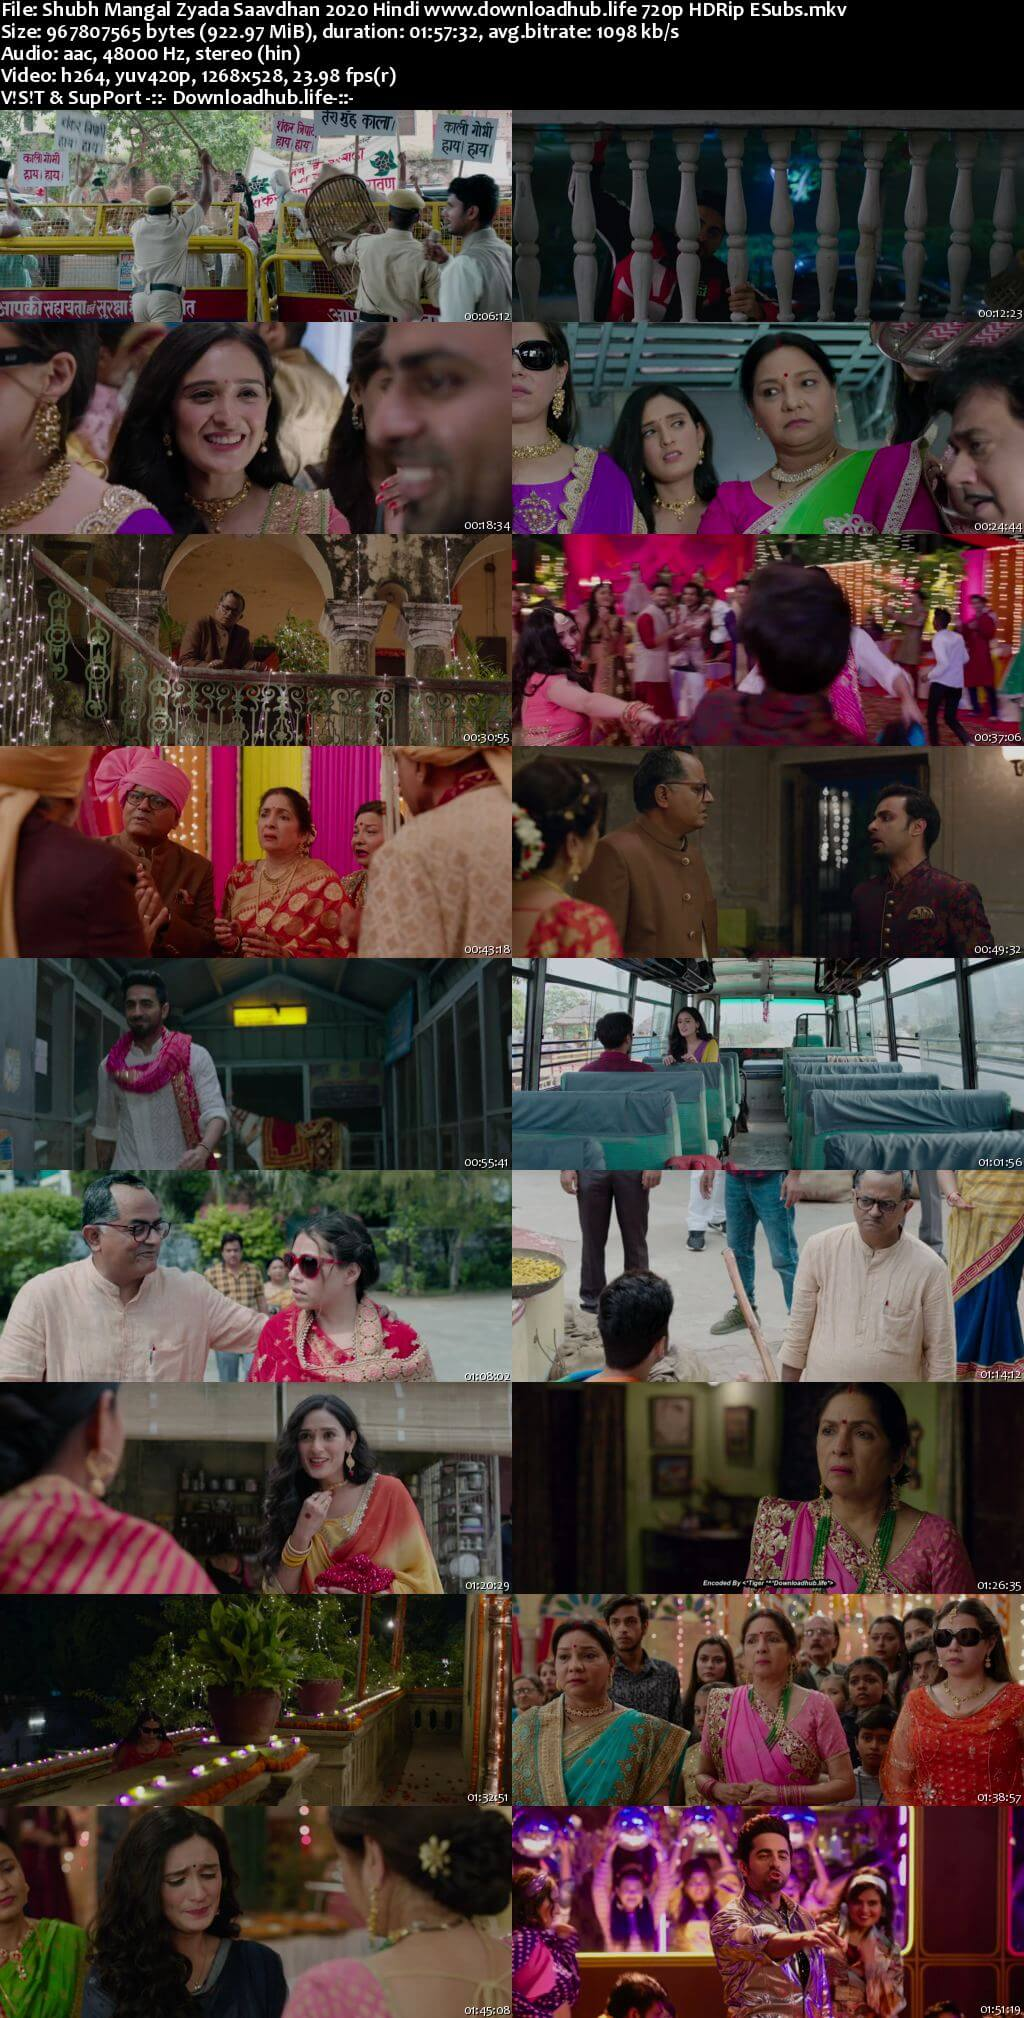 Shubh Mangal Zyada Saavdhan 2020 Hindi 720p HDRip ESubs